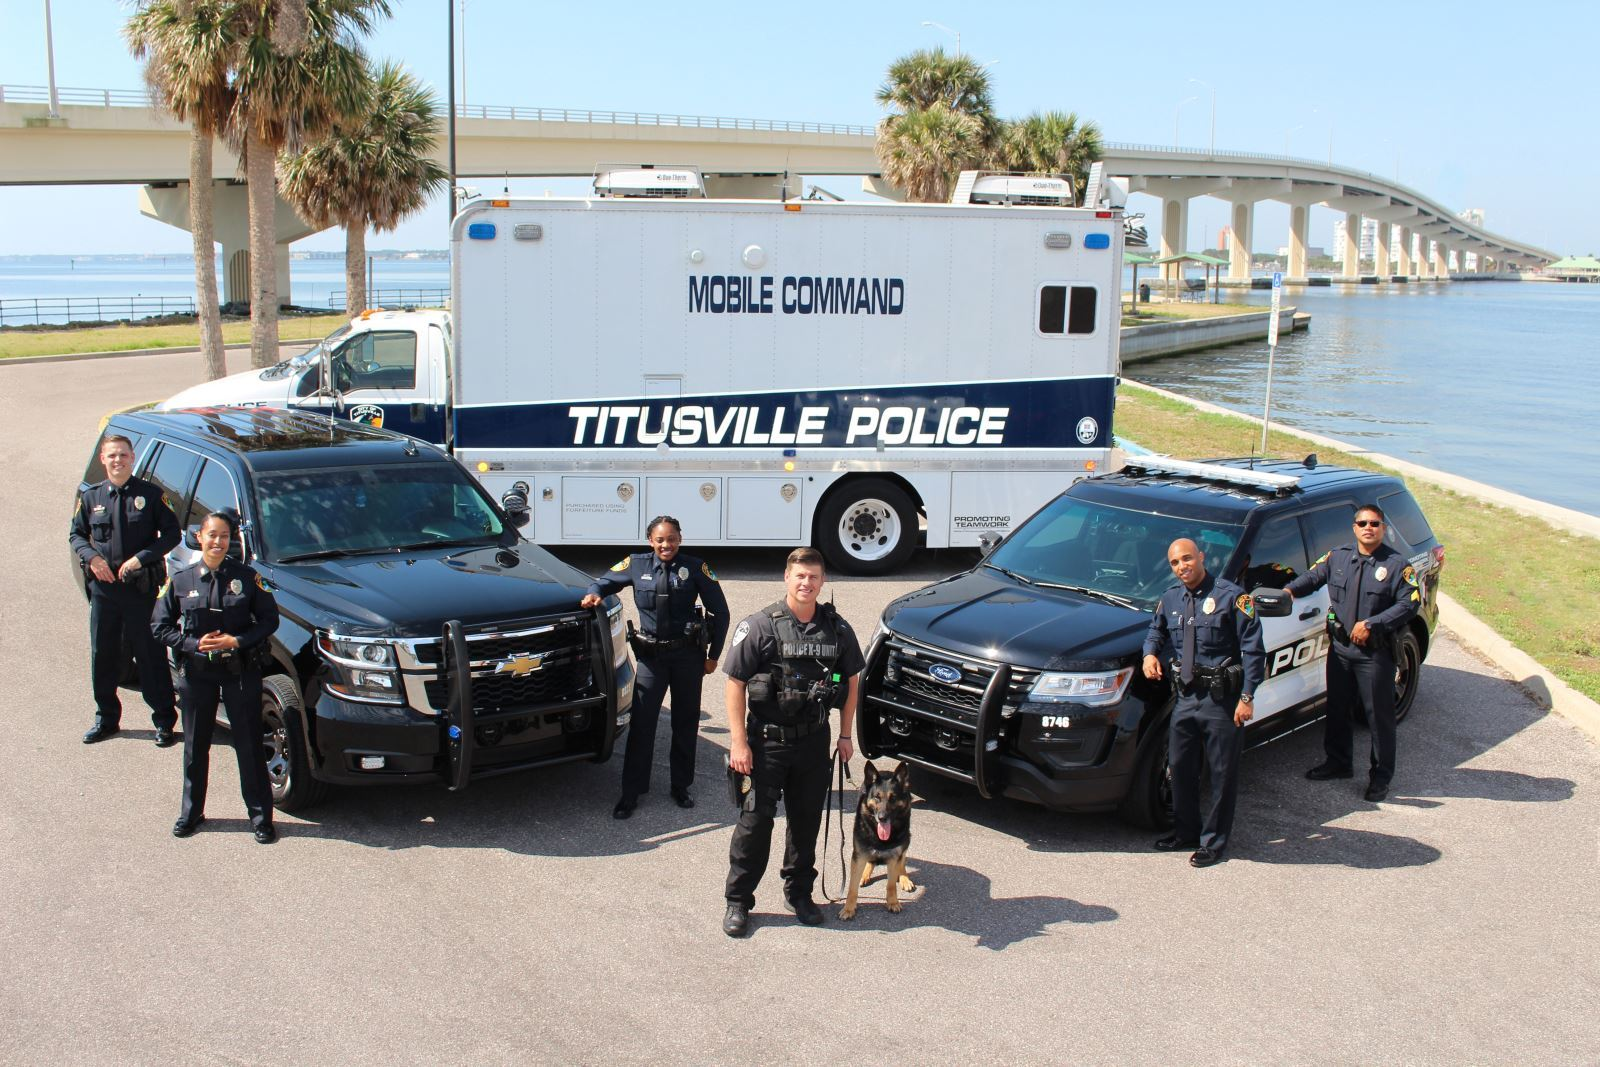 Officers Standing with Titusville Mobile Command Vehicles